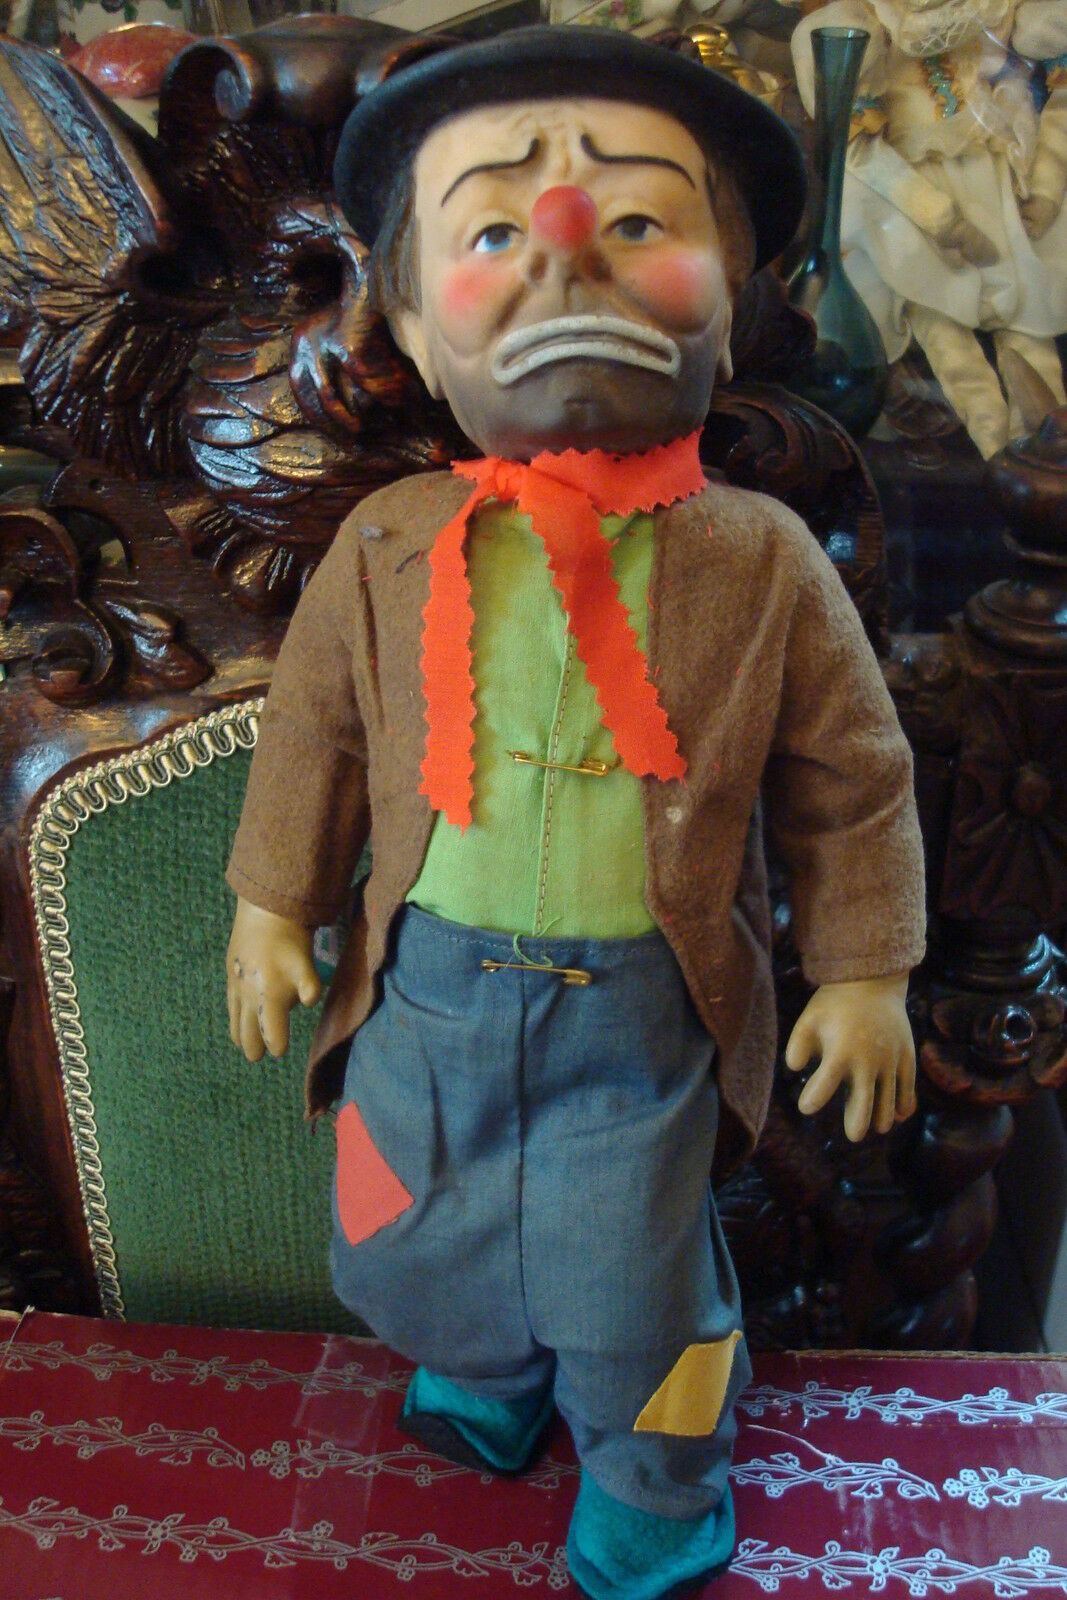 1950s Emmett Kelly Weary Willy The Clown Doll Made By